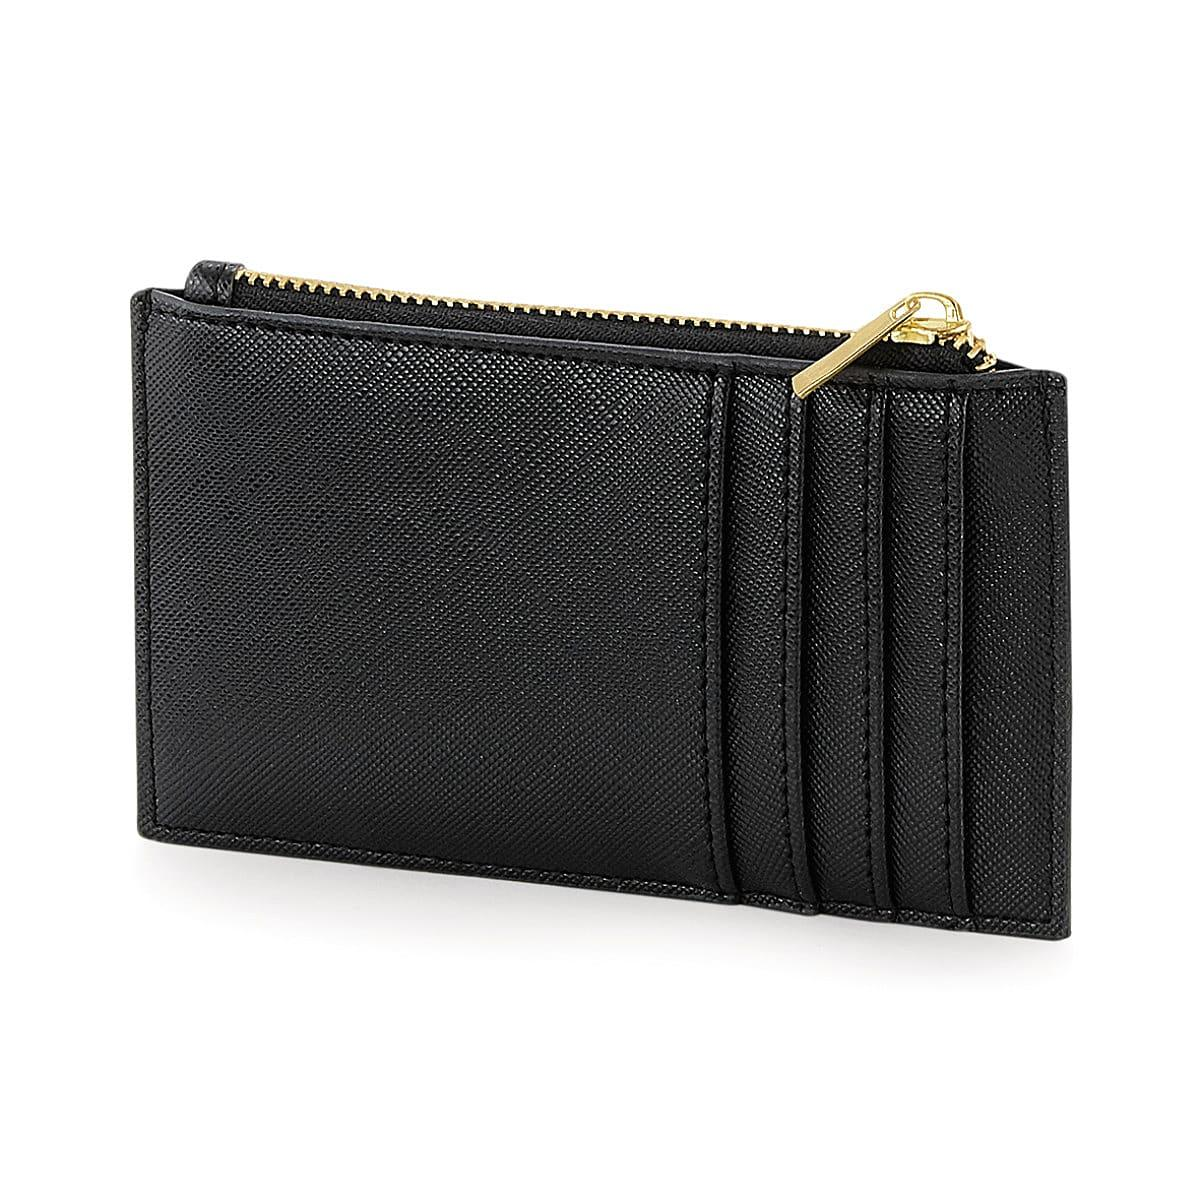 Bagbase Boutique Card Holder in Black (Product Code: BG754)